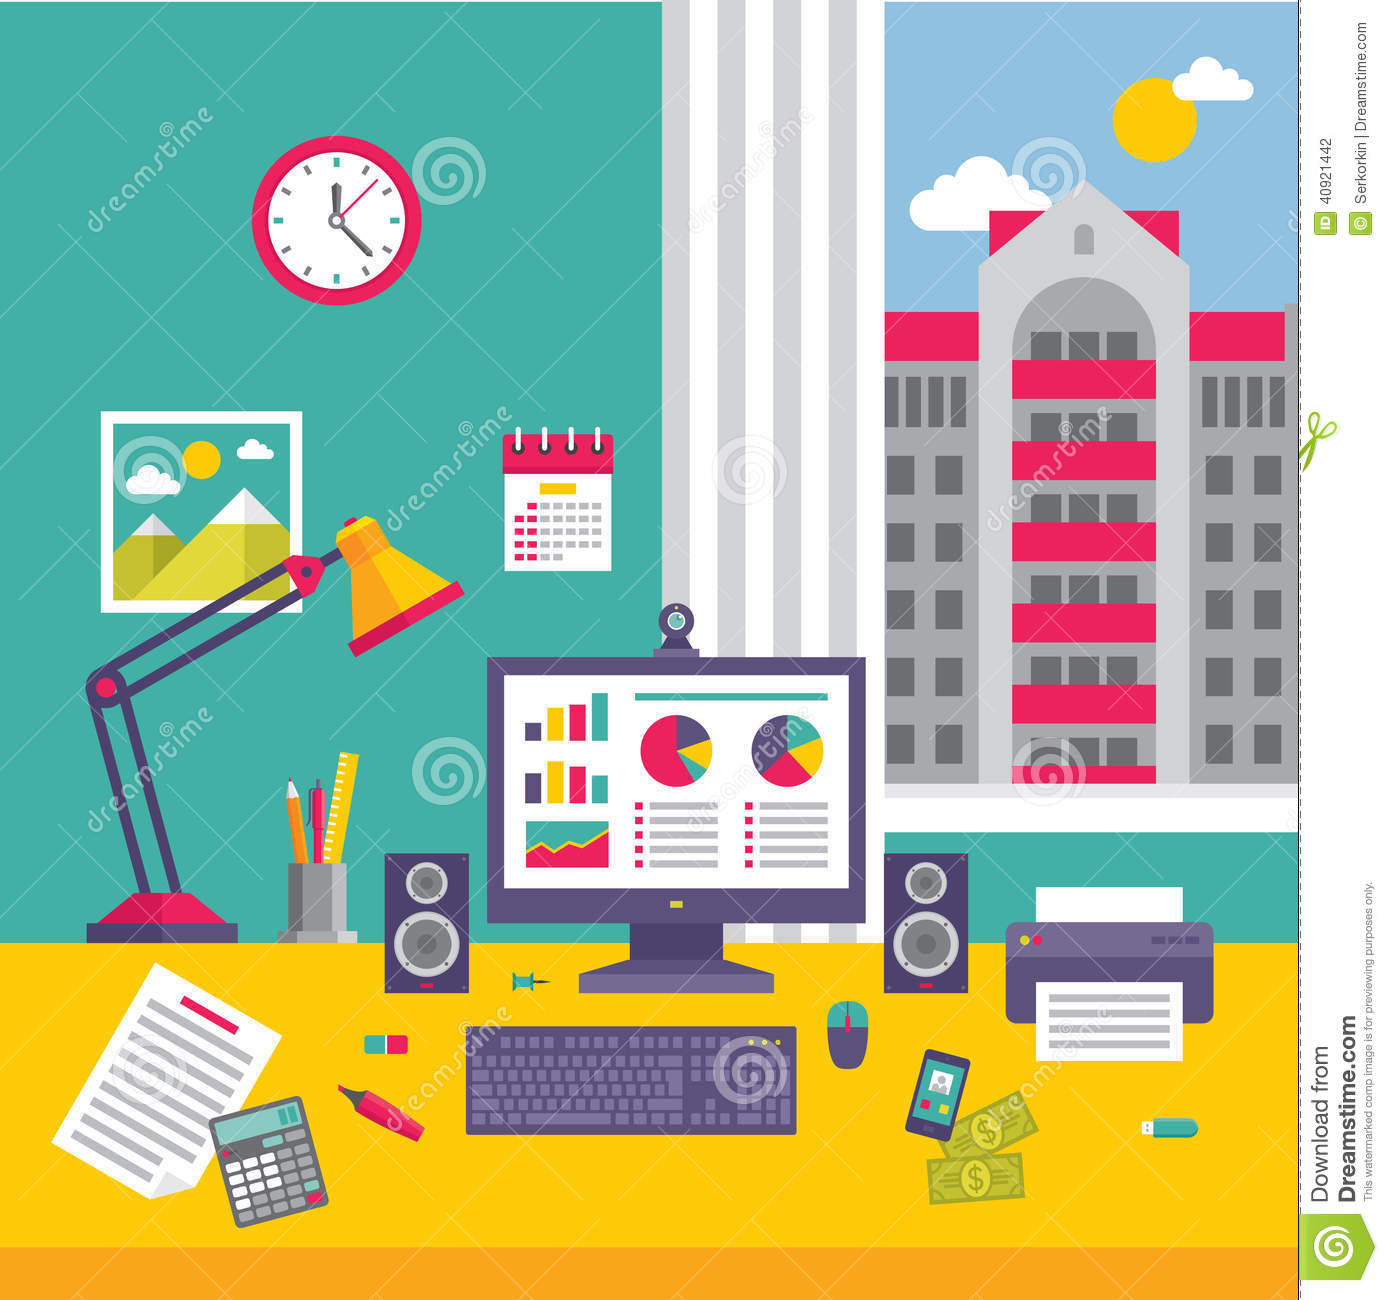 Business Office Workplace In Flat Design Style Stock Vector - Image